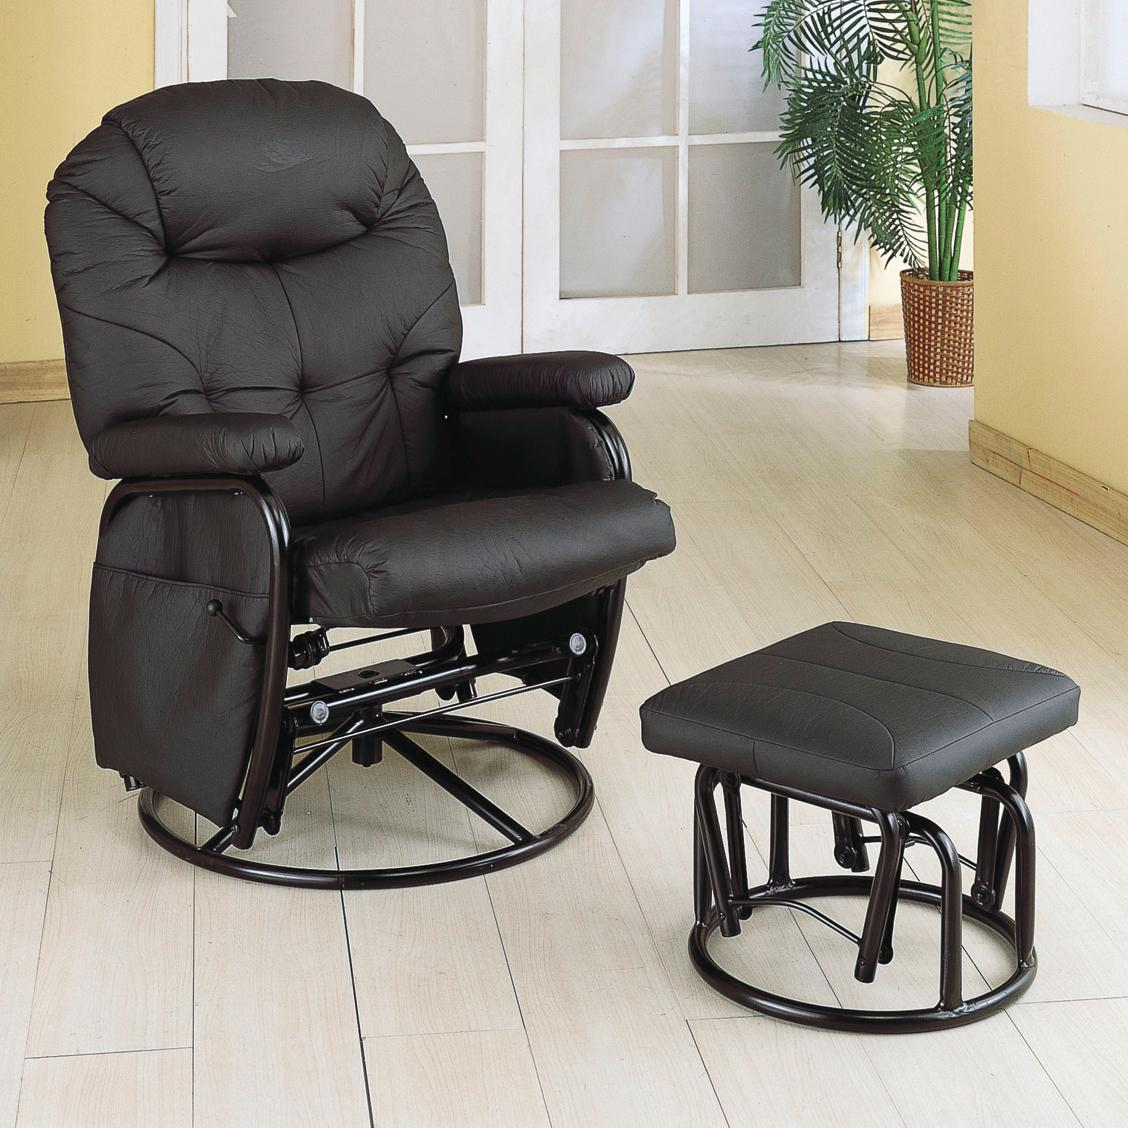 Recliners With Ottomans Deluxe Swivel Glider With Matching